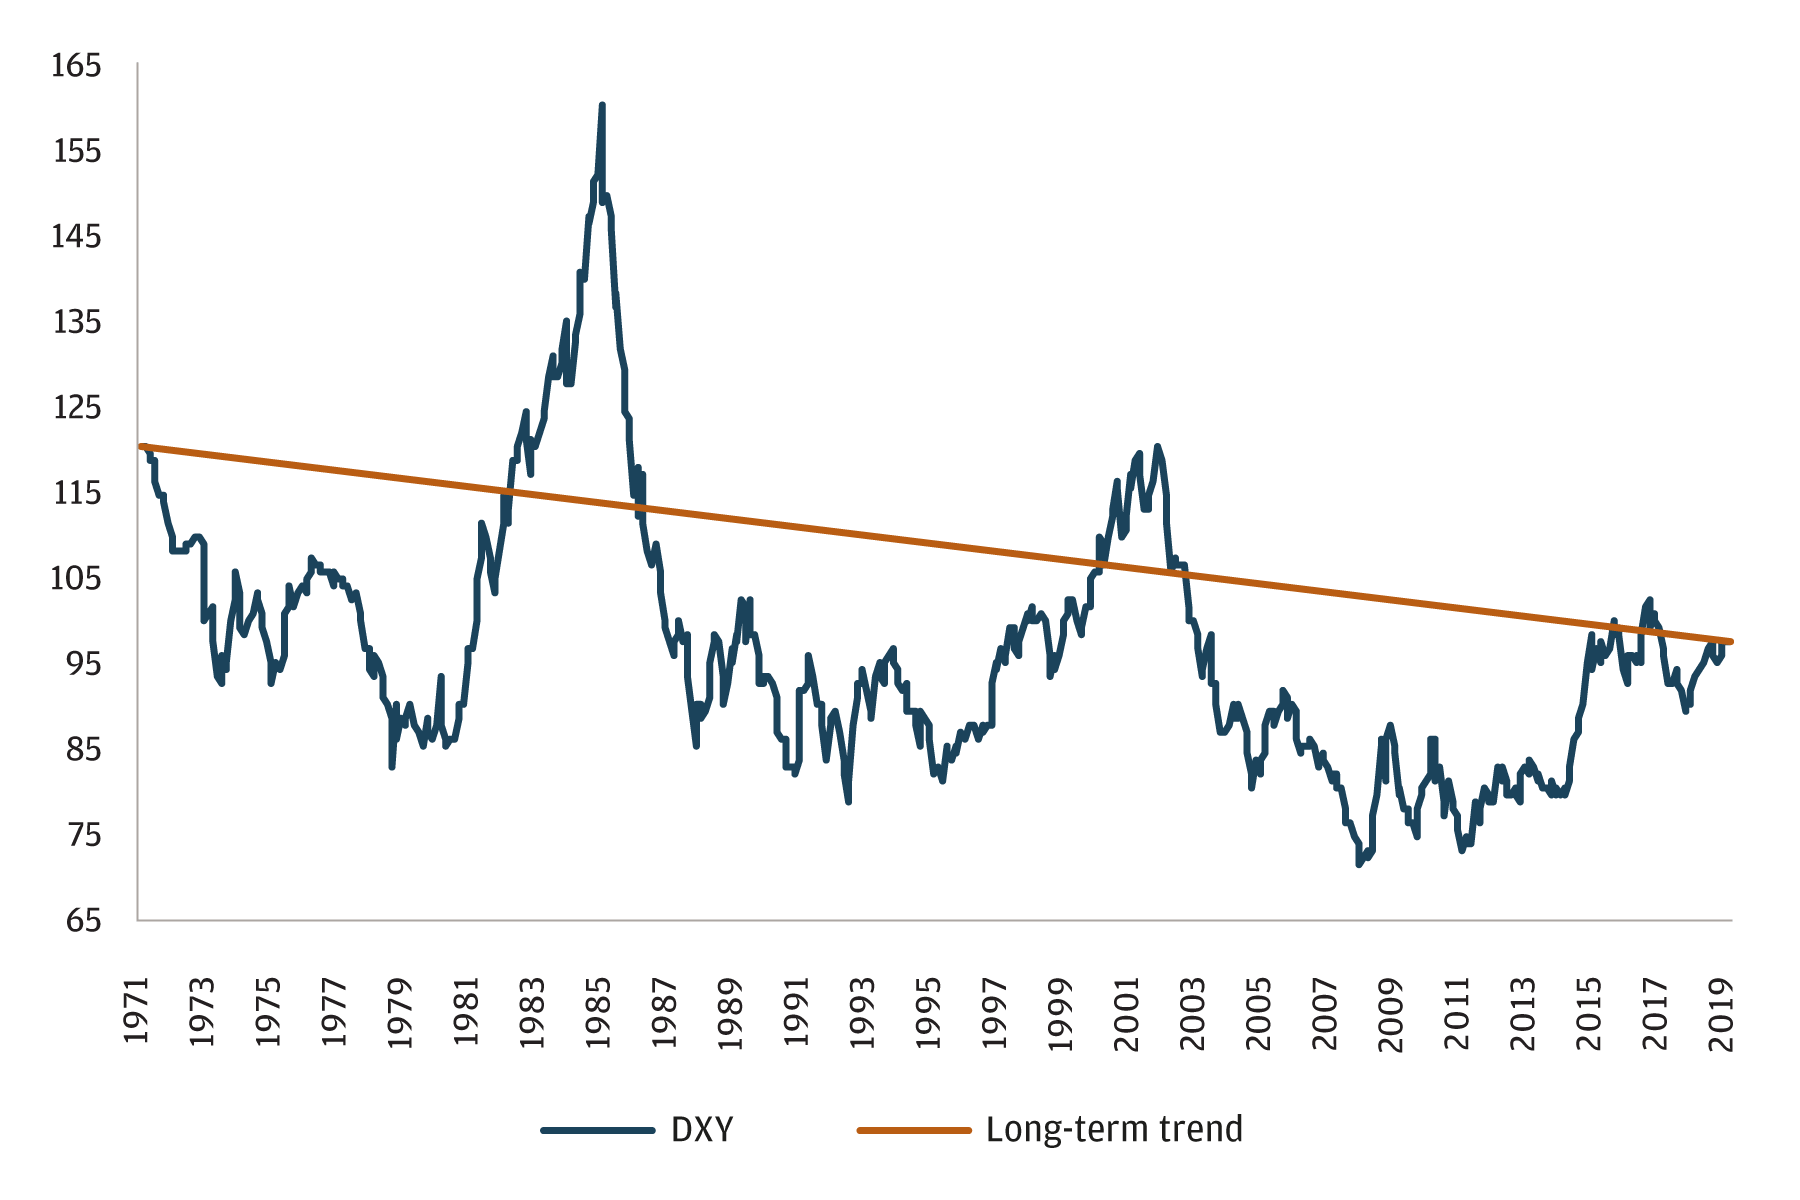 Line chart shows dollar index compared with the long-term trend of the dollar index from 1971 through 2019. Both lines have decreased during this time period. The long term-trend line is at its lowest level now.